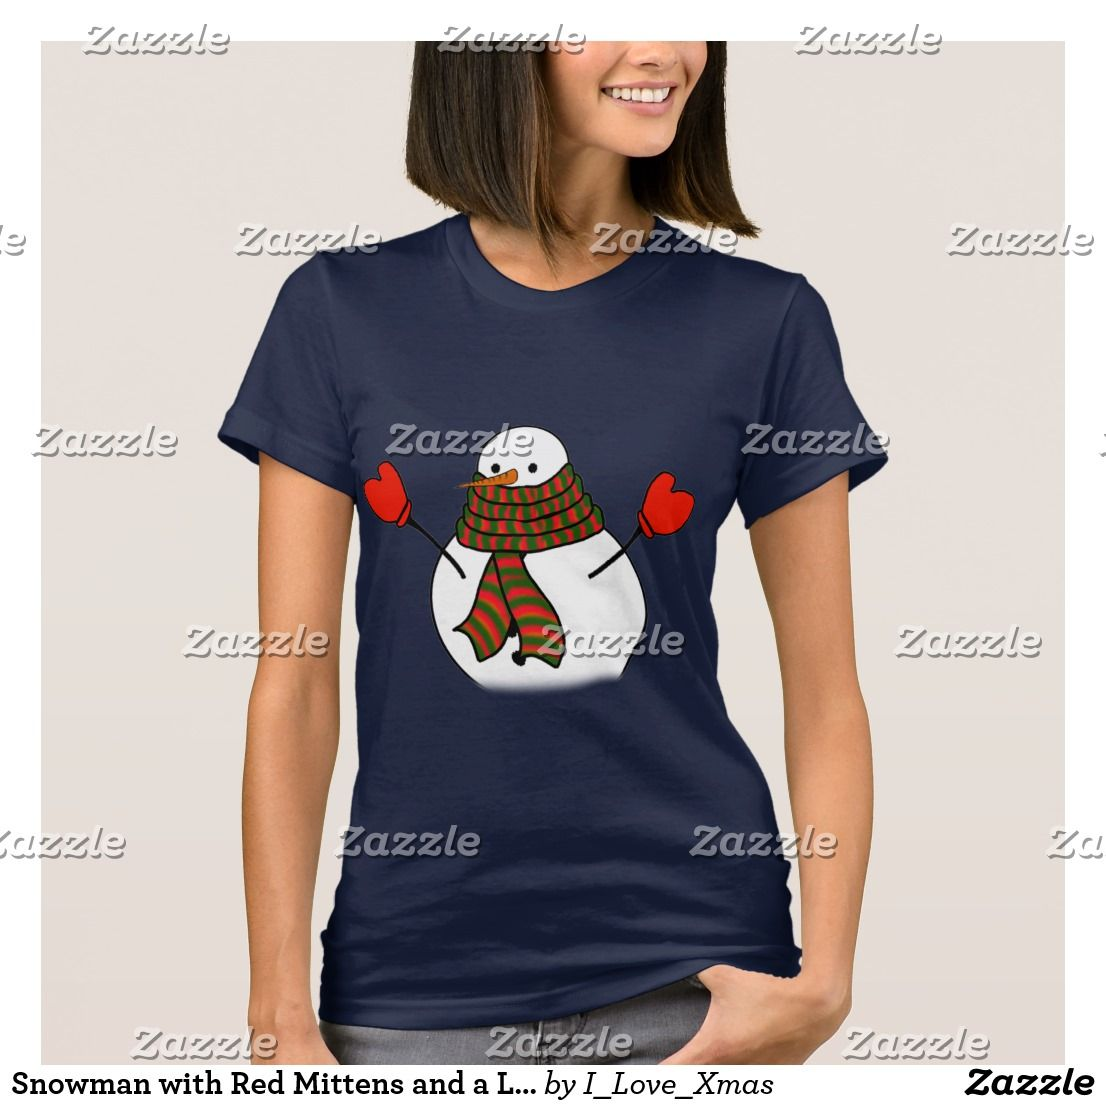 16907b68b Snowman with Red Mittens and a Long Scarf T-Shirt by #I_Love_Xmas #Zazzle  #Gravityx9 #ilovexmas * Christmas tee shirts * Christmas shirts ideas *  holiday ...